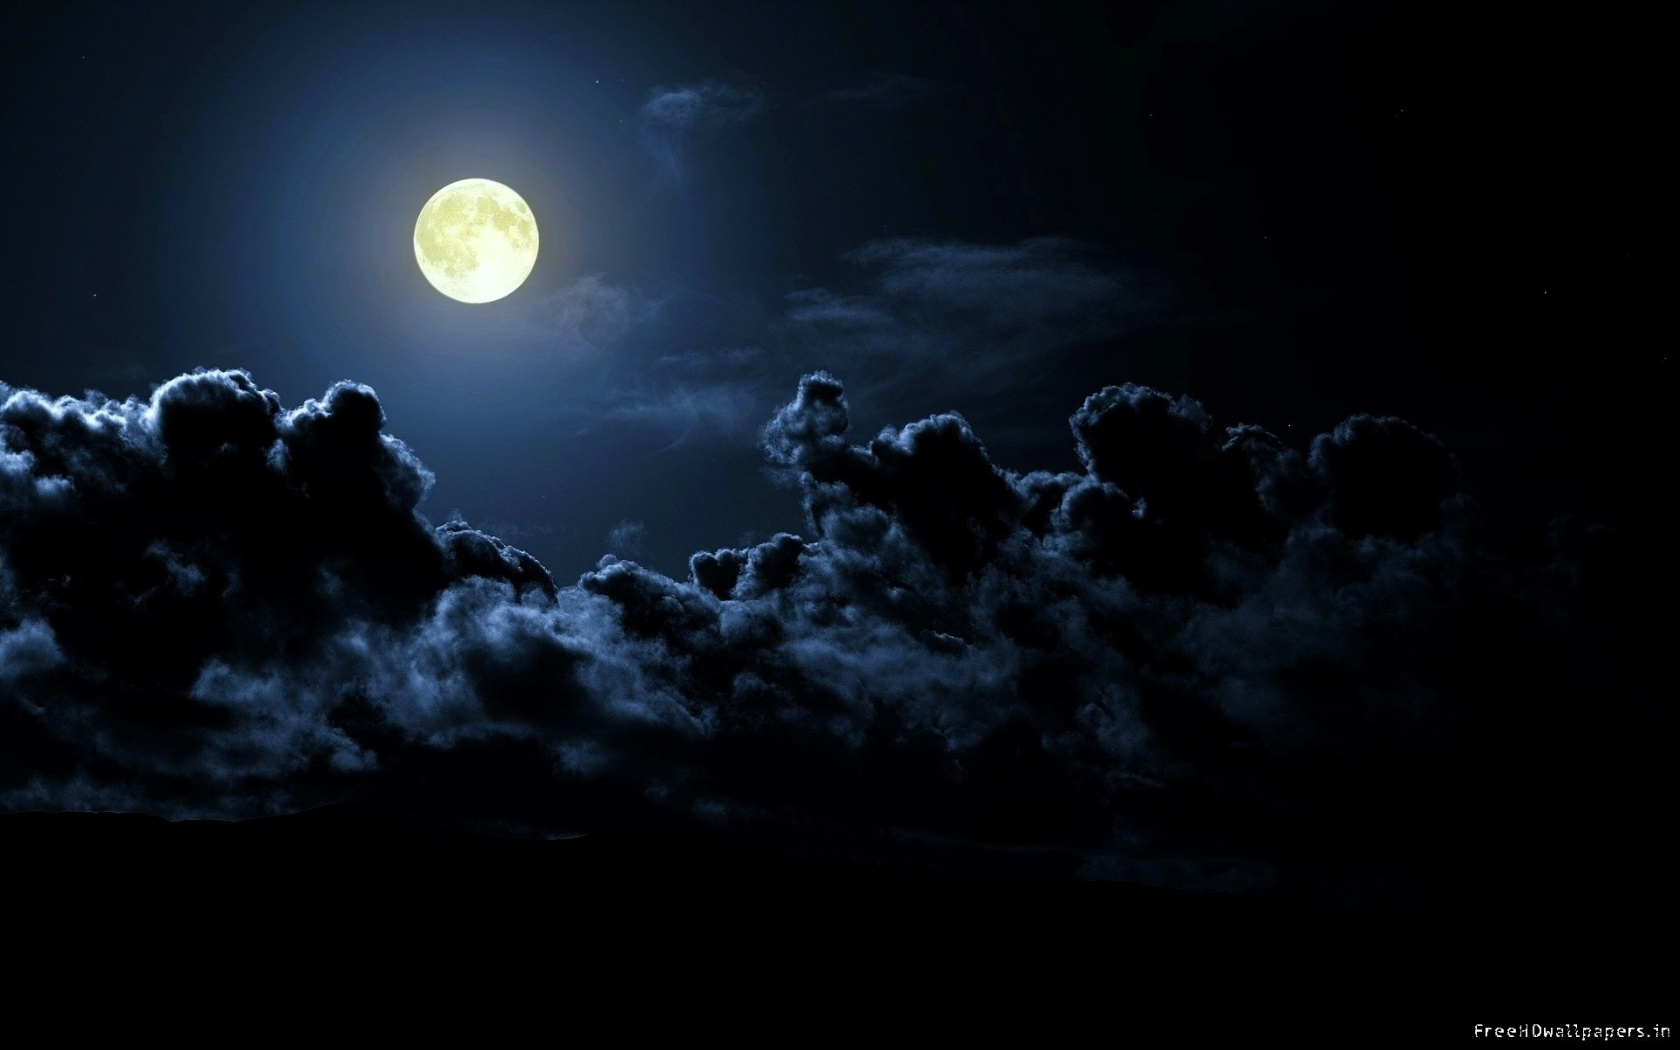 Night Moon Wallpaper - WallpaperSafari